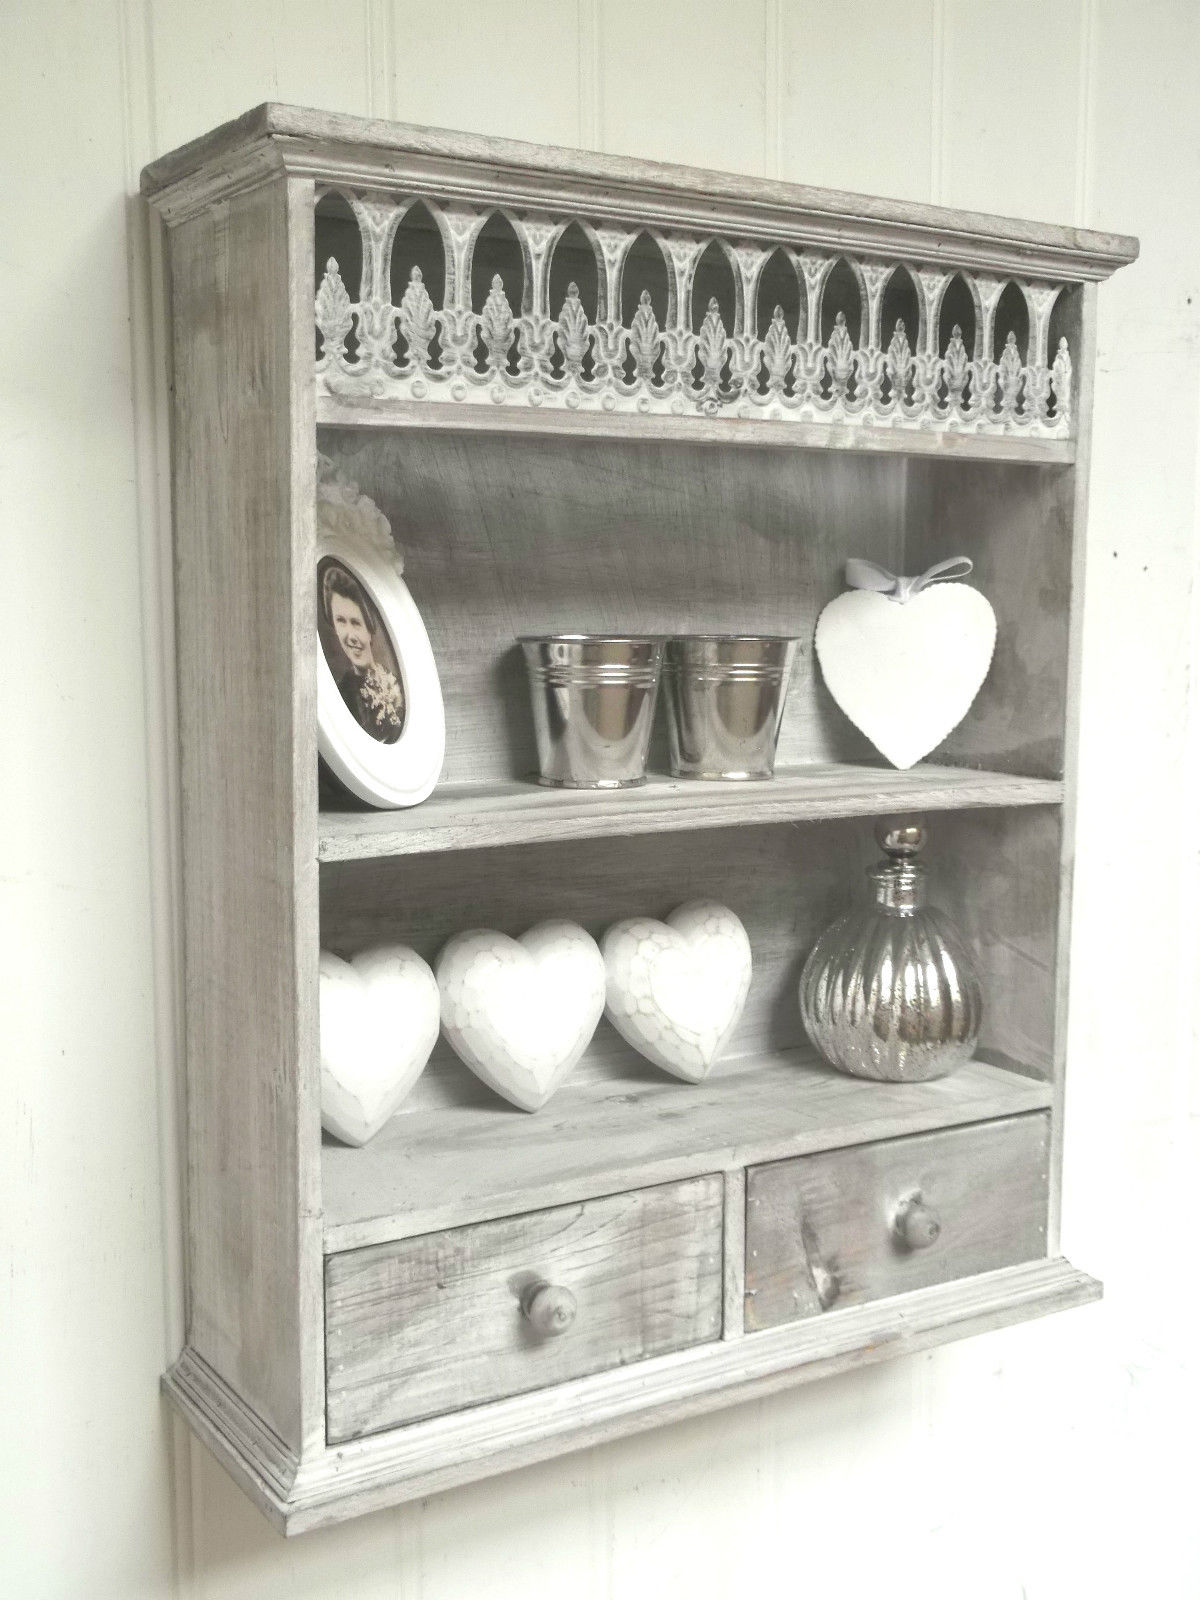 metal chair covers wedding oak desk swivel shabby chic wall unit shelf storage cupboard cabinet french vintage style – amazing grace interiors